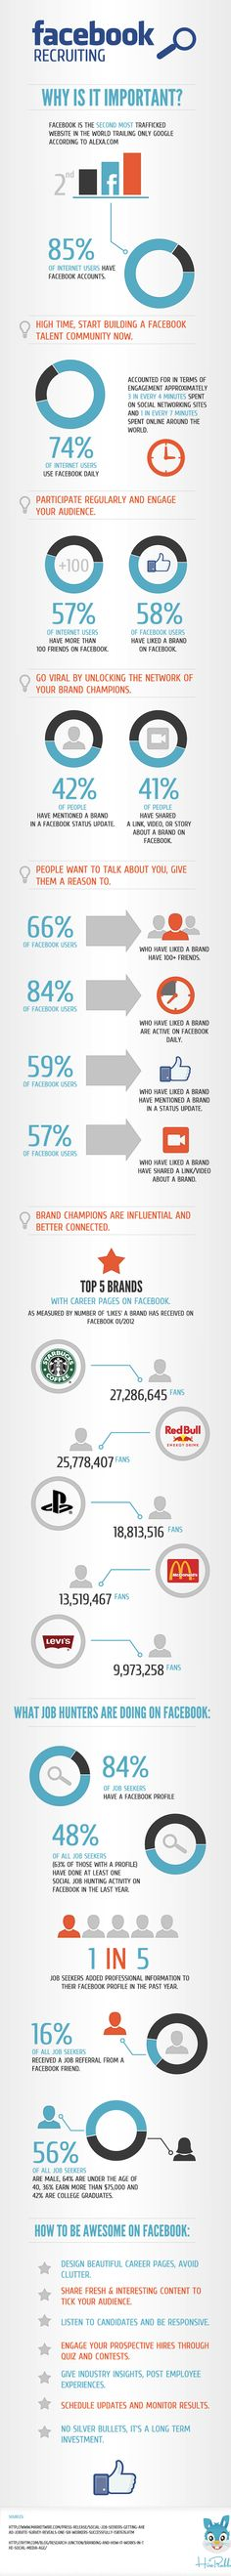 Do you have a social #recruiting success story? Learn more about hiring on Facebook [infographic] #SocialMedia